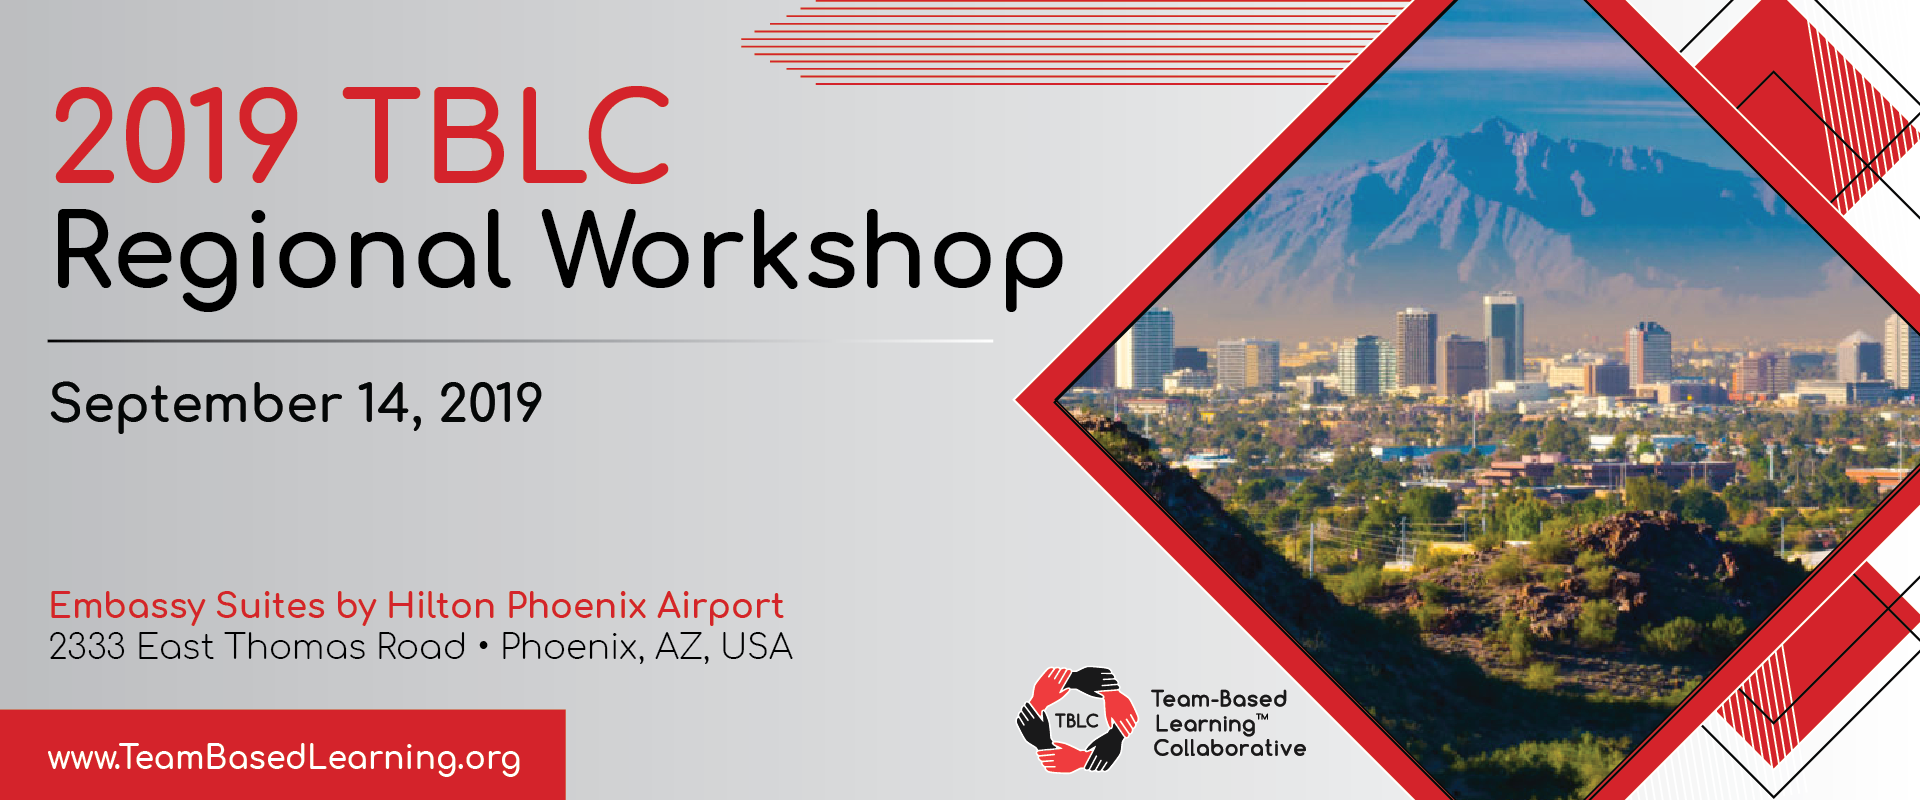 2019 TBLC Regional Workshop - Phoenix